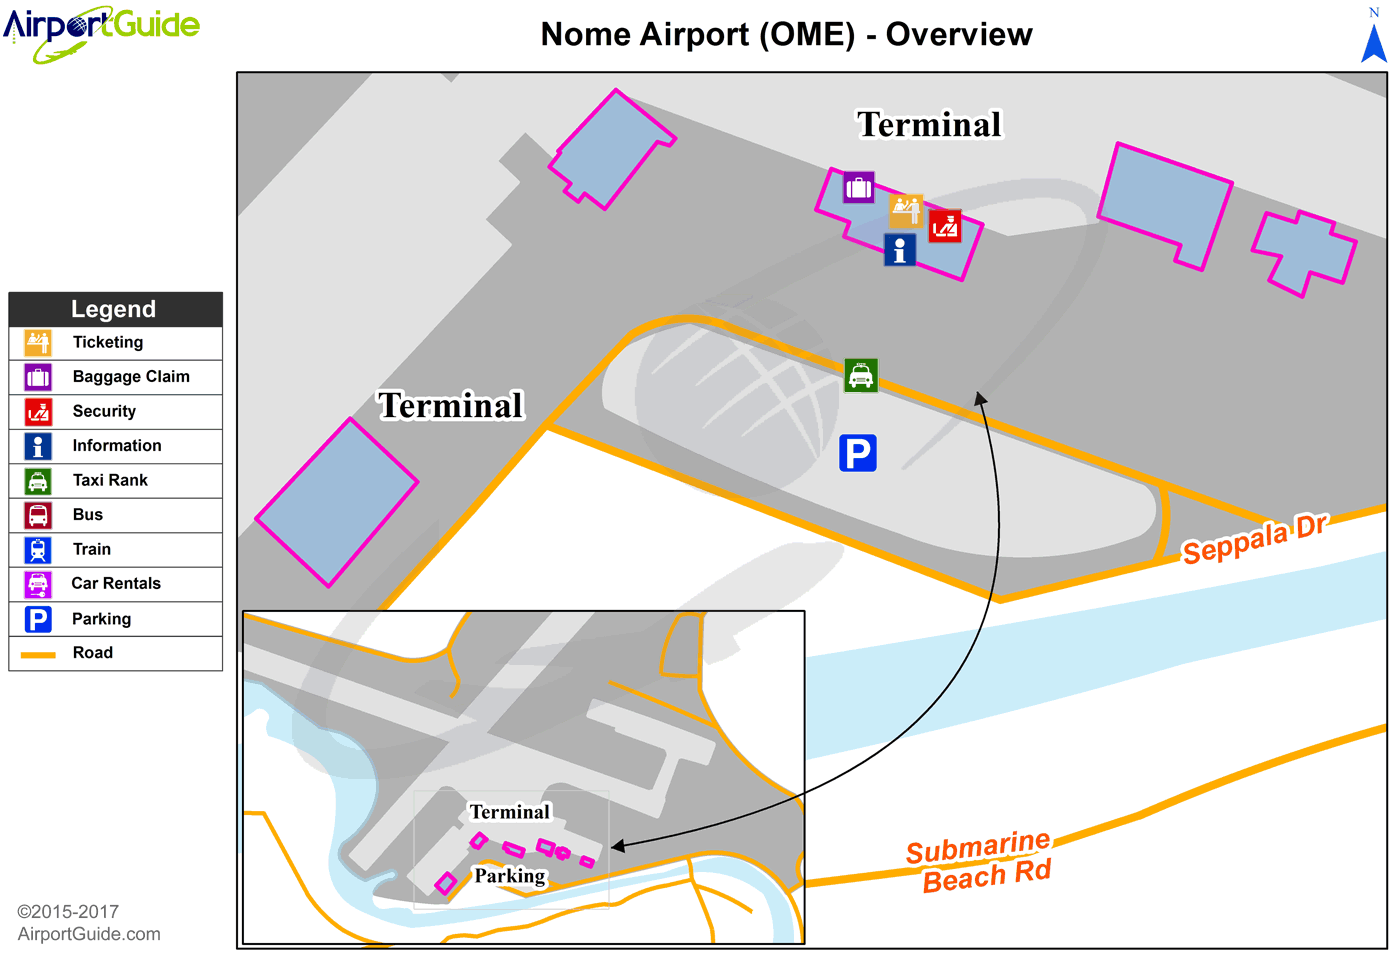 Nome - Nome (OME) Airport Terminal Map - Overview